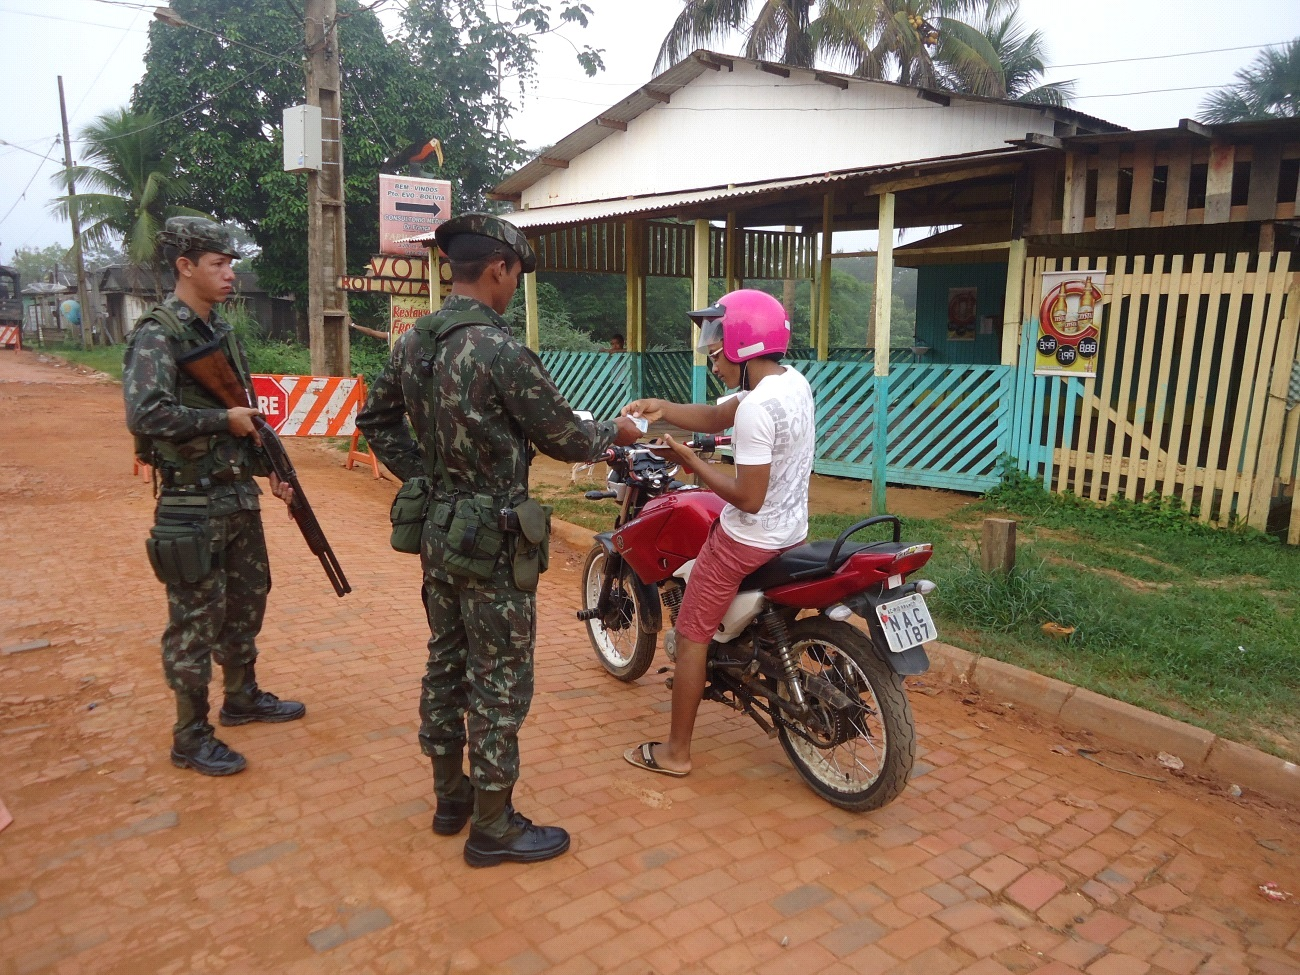 Brazilian Army Soldiers and Police Improve Security with Operation Curaretinga